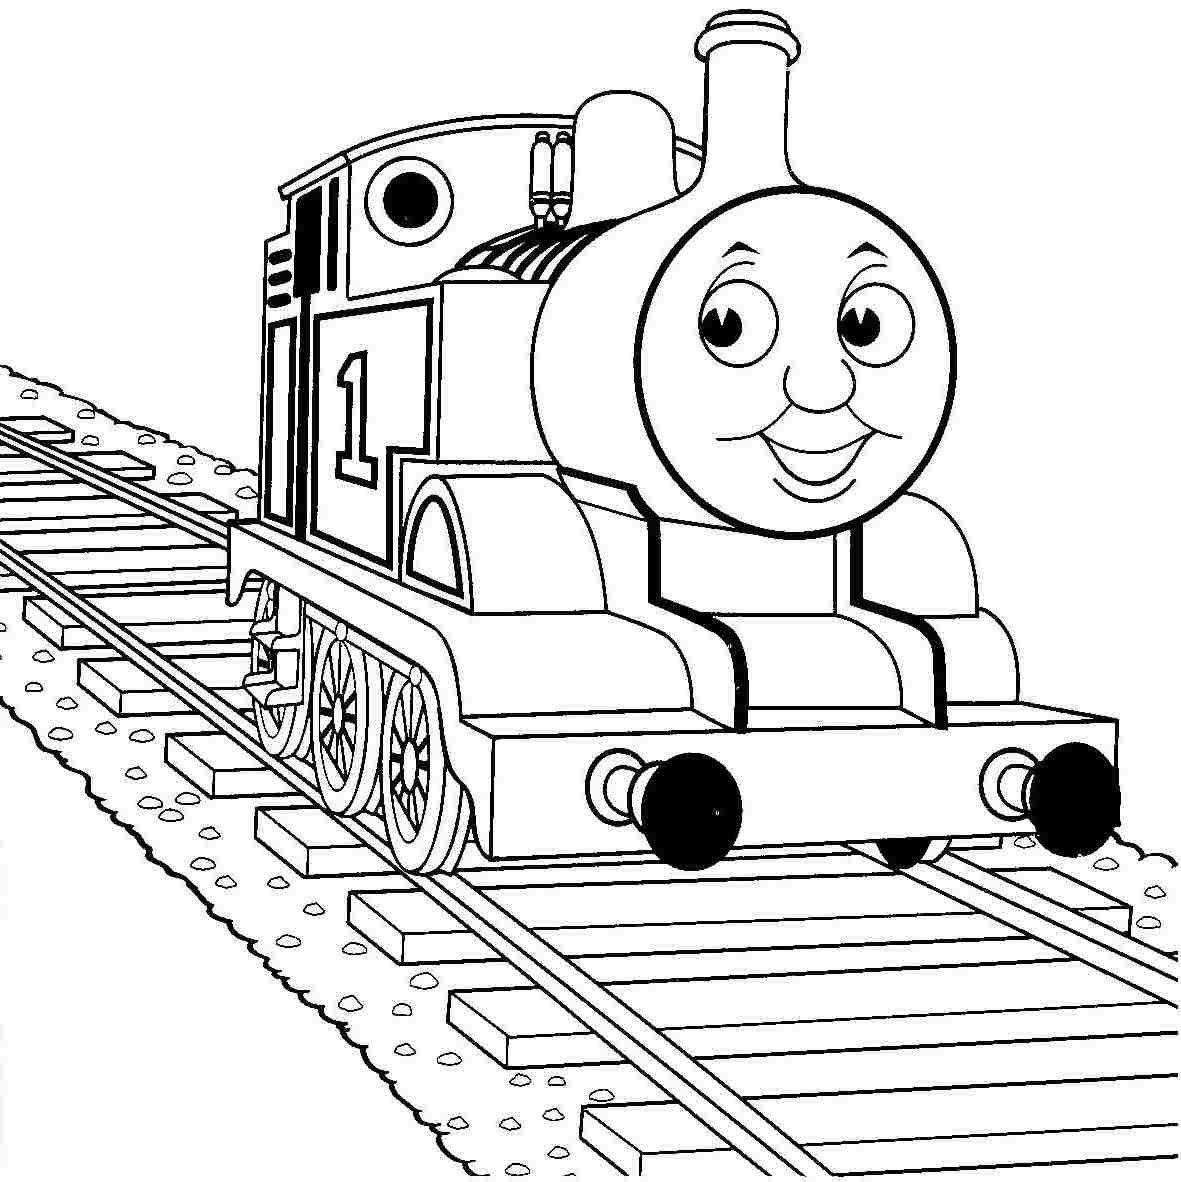 4 Train Coloring Pages For Adult In 2020 Karacsony